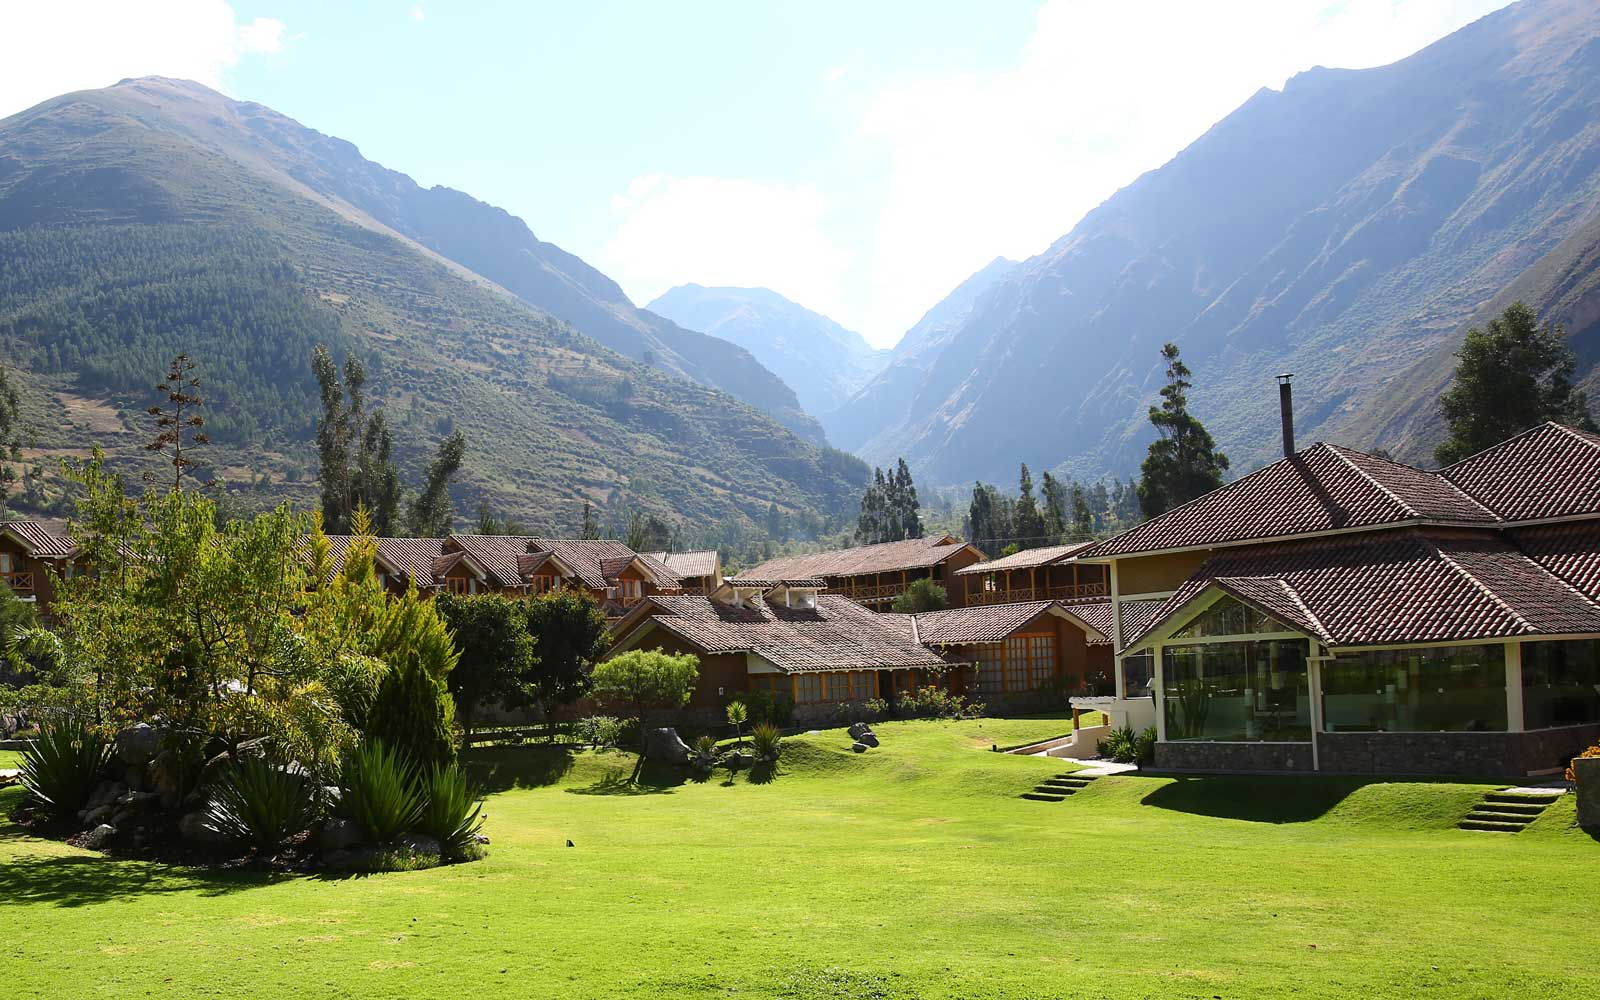 30% off an 8-day Tour of Machu Picchu and the Sacred Valley